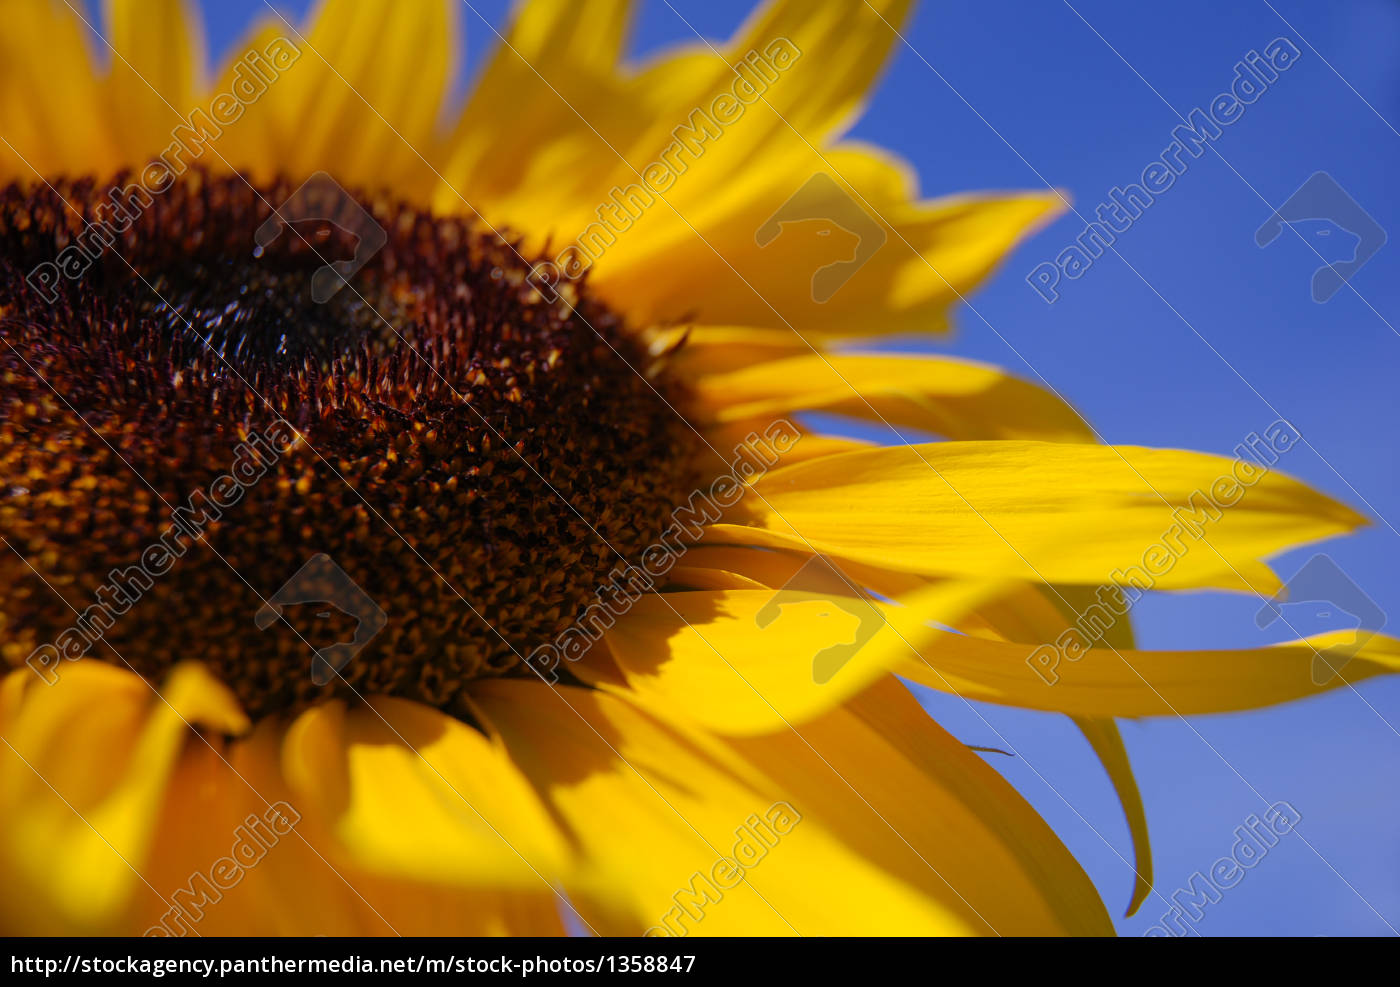 sunflower - 1358847